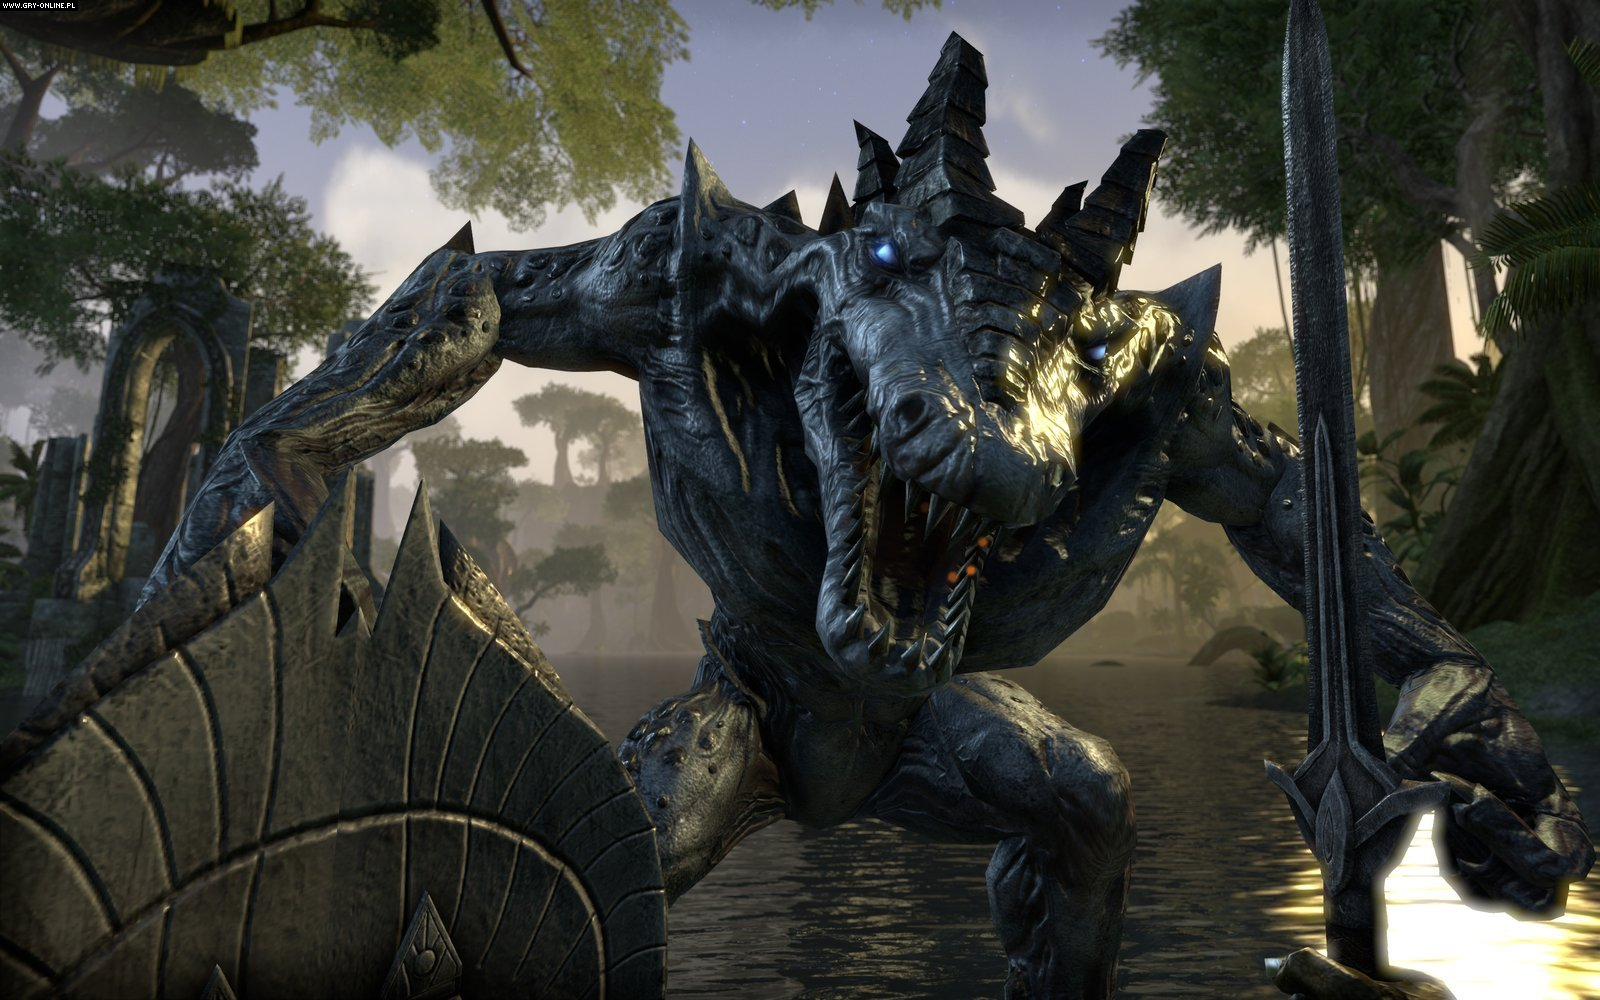 The Elder Scrolls Online: Tamriel Unlimited PC, PS4, XONE Gry Screen 50/104, ZeniMax Online Studios, Bethesda Softworks